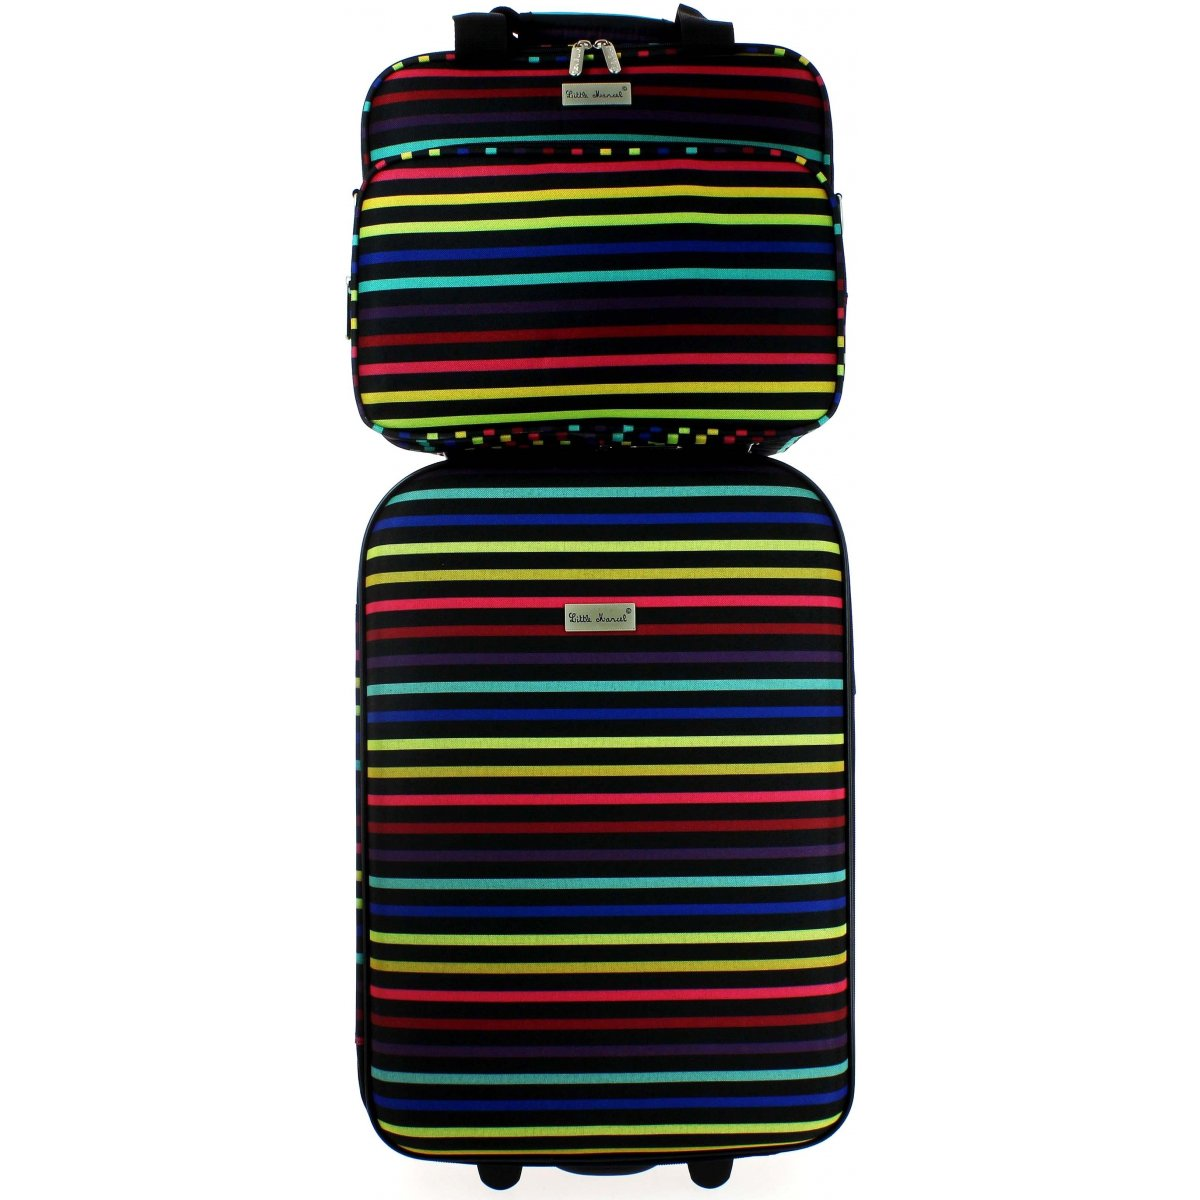 valise cabine ryanair et reporter little marcel marjo241 couleur principale 241 valise. Black Bedroom Furniture Sets. Home Design Ideas